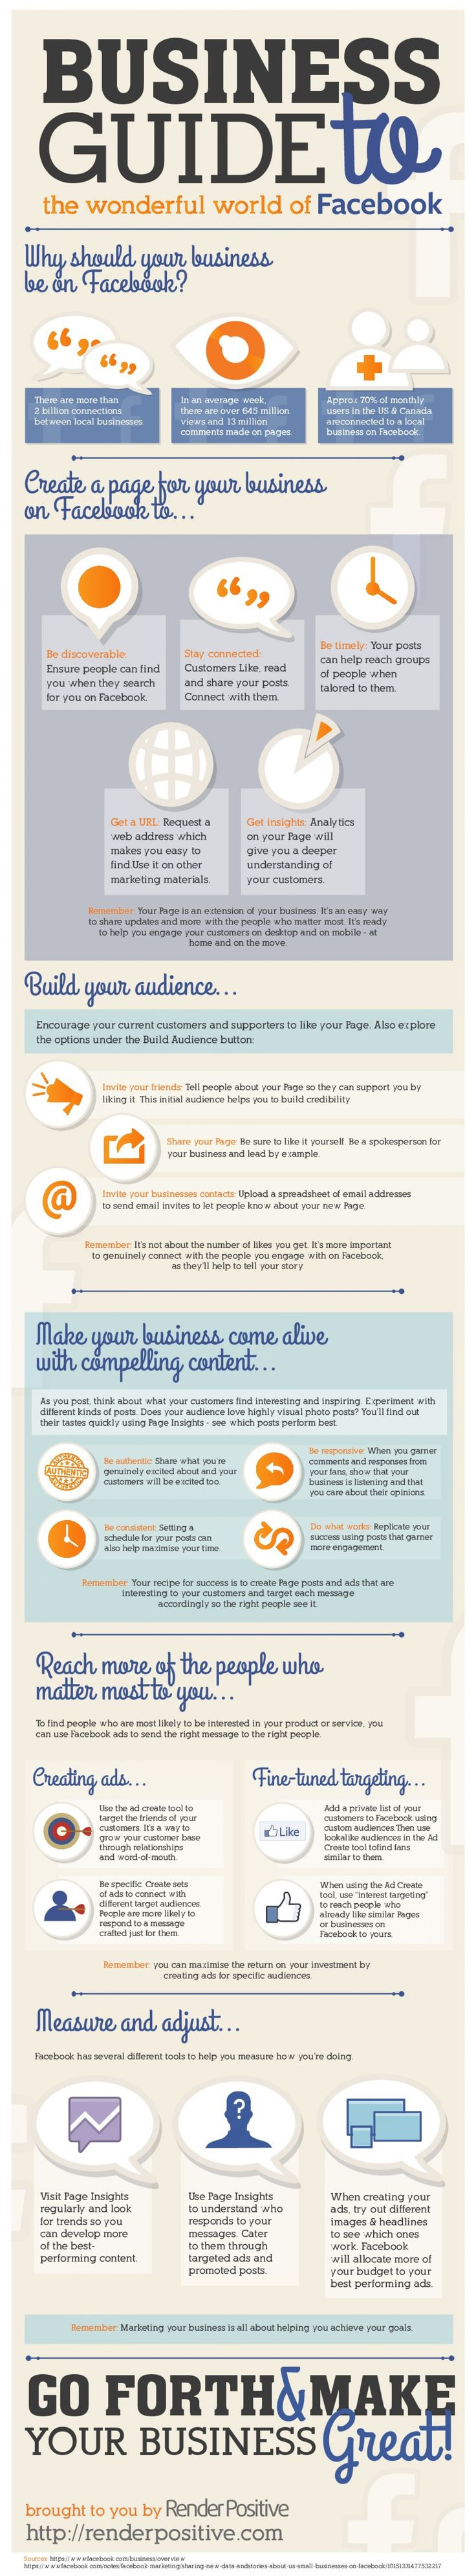 Business Guide to #Facebook